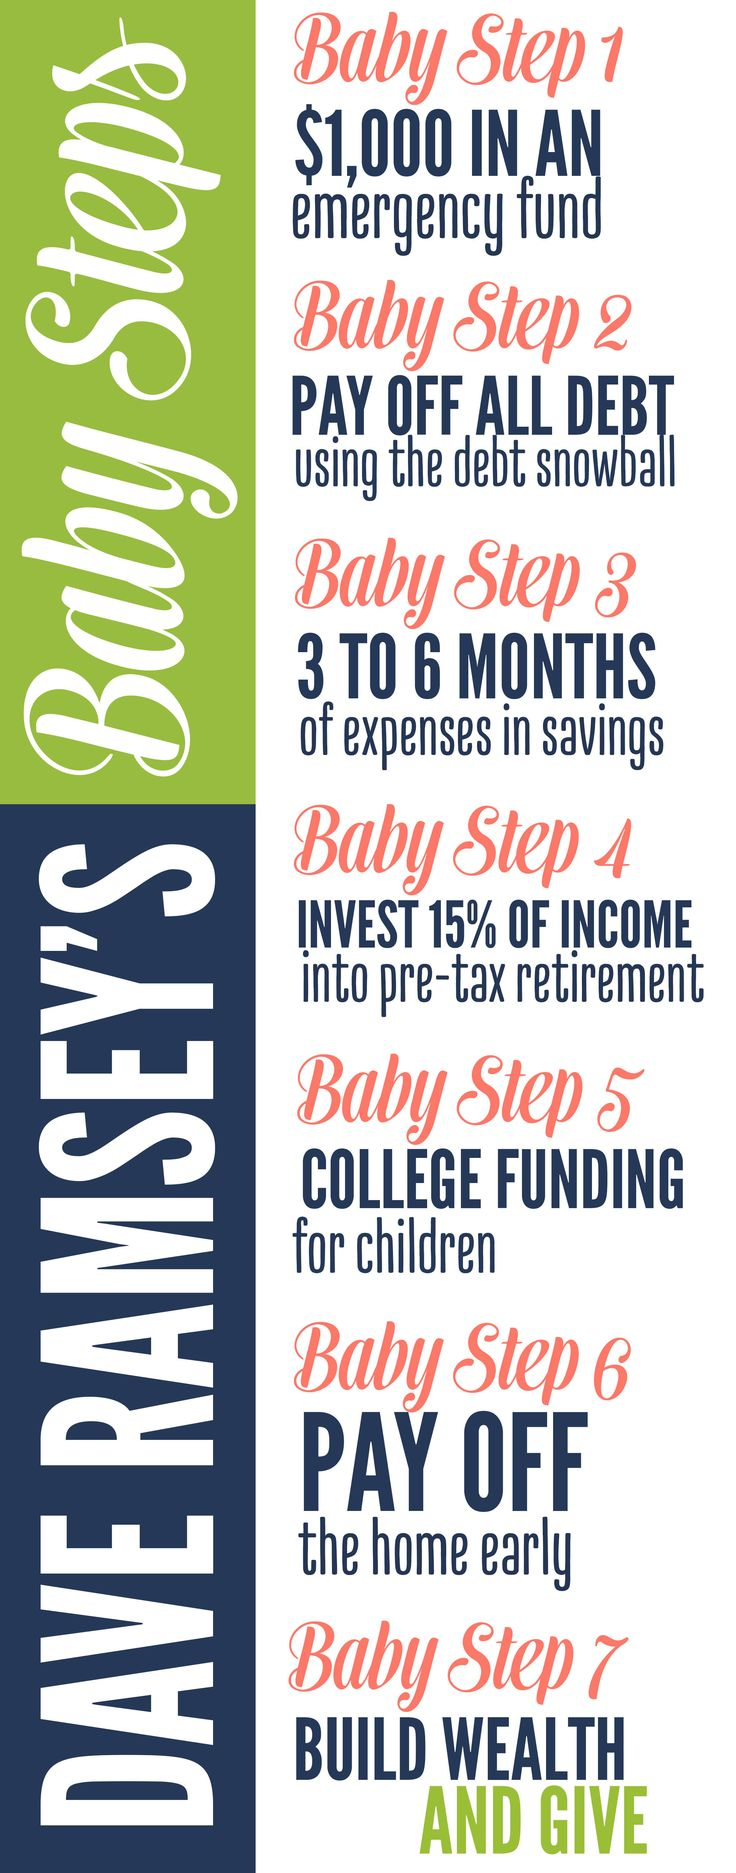 Management : Dave Ramsey's Baby Steps - InfographicNow.com ...